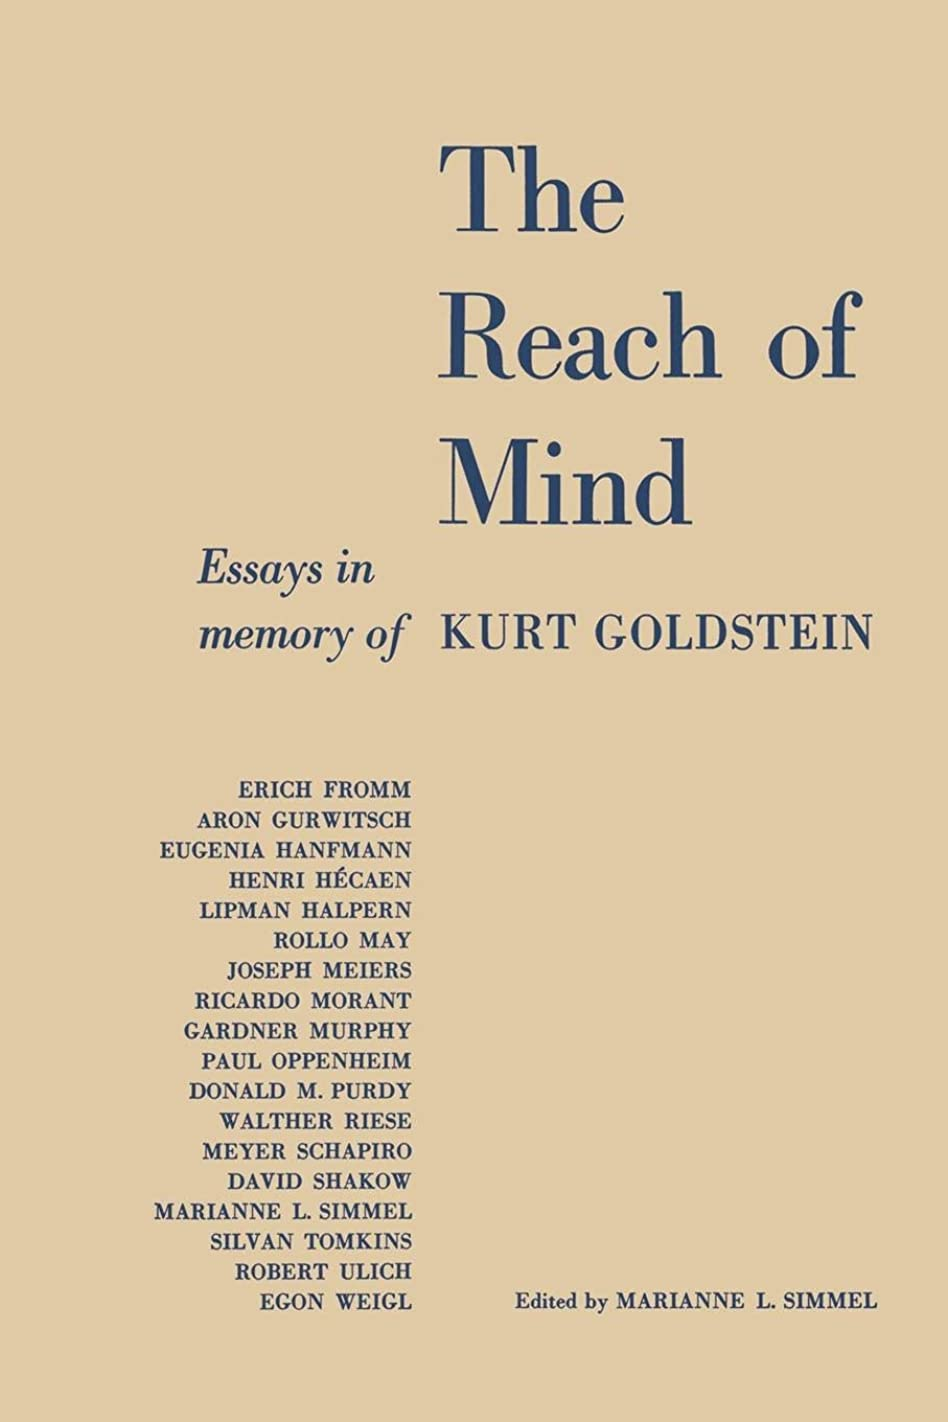 カウンターパート決定するフォーラムThe Reach of Mind: Essays in Memory of Kurt Goldstein